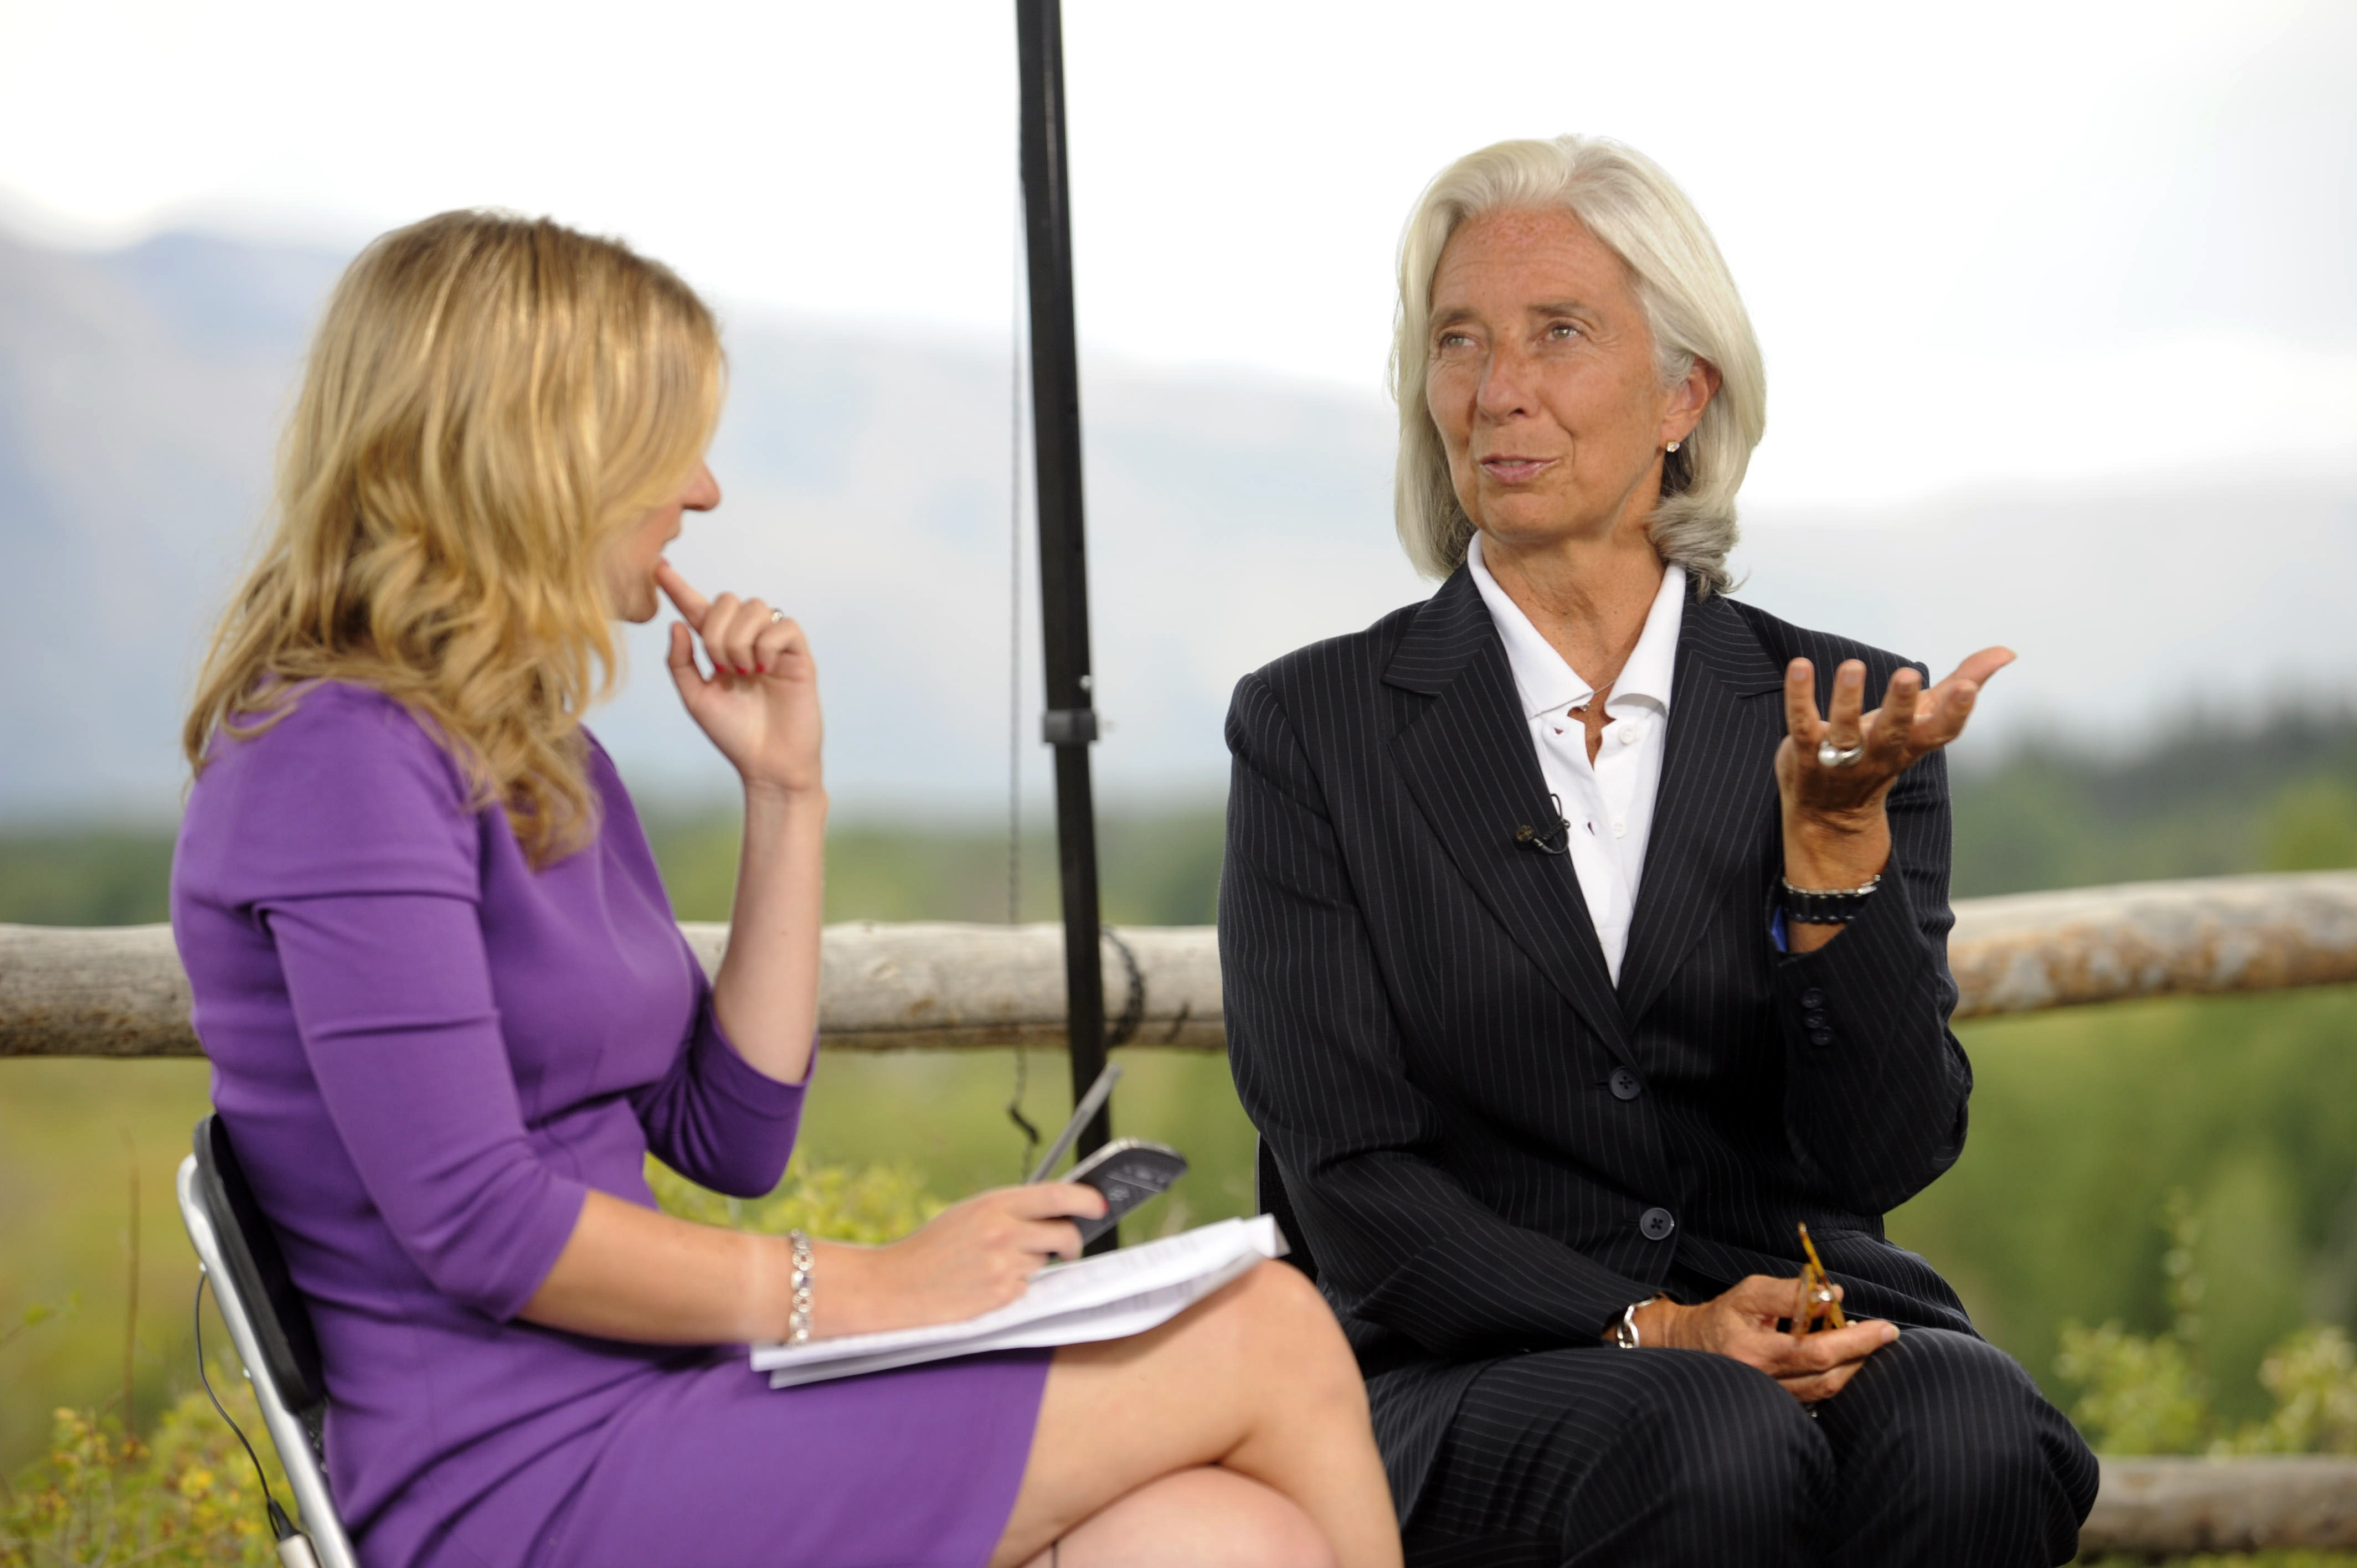 Sobering message: Christine Lagarde, managing director of the International Monetary Fund, gestures while being interviewed by Sarah Eisen of Bloomberg News at the Jackson Hole economic symposium sponsored by the Kansas City Federal Reserve Bank at the Jackson Lake Lodge in Moran, Wyoming, on Friday.   BLOOMBERG